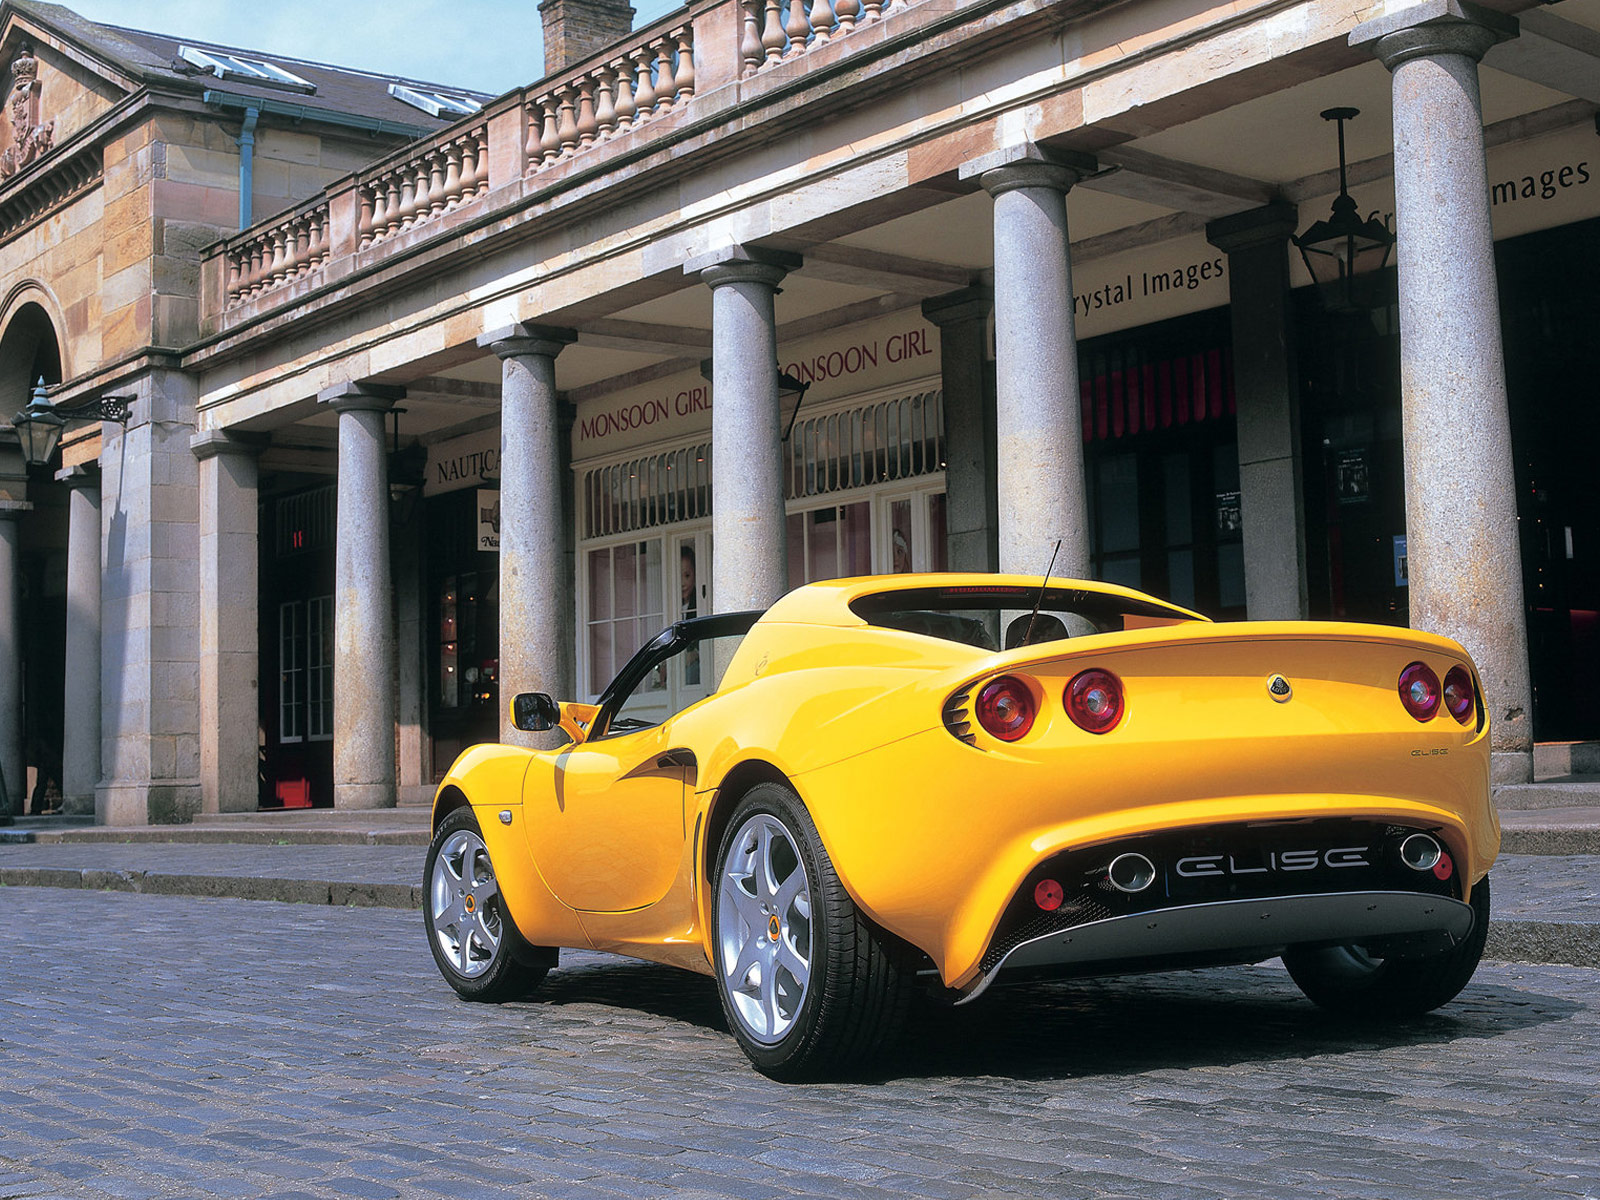 2004 LOTUS Elise | Lotus car picture |